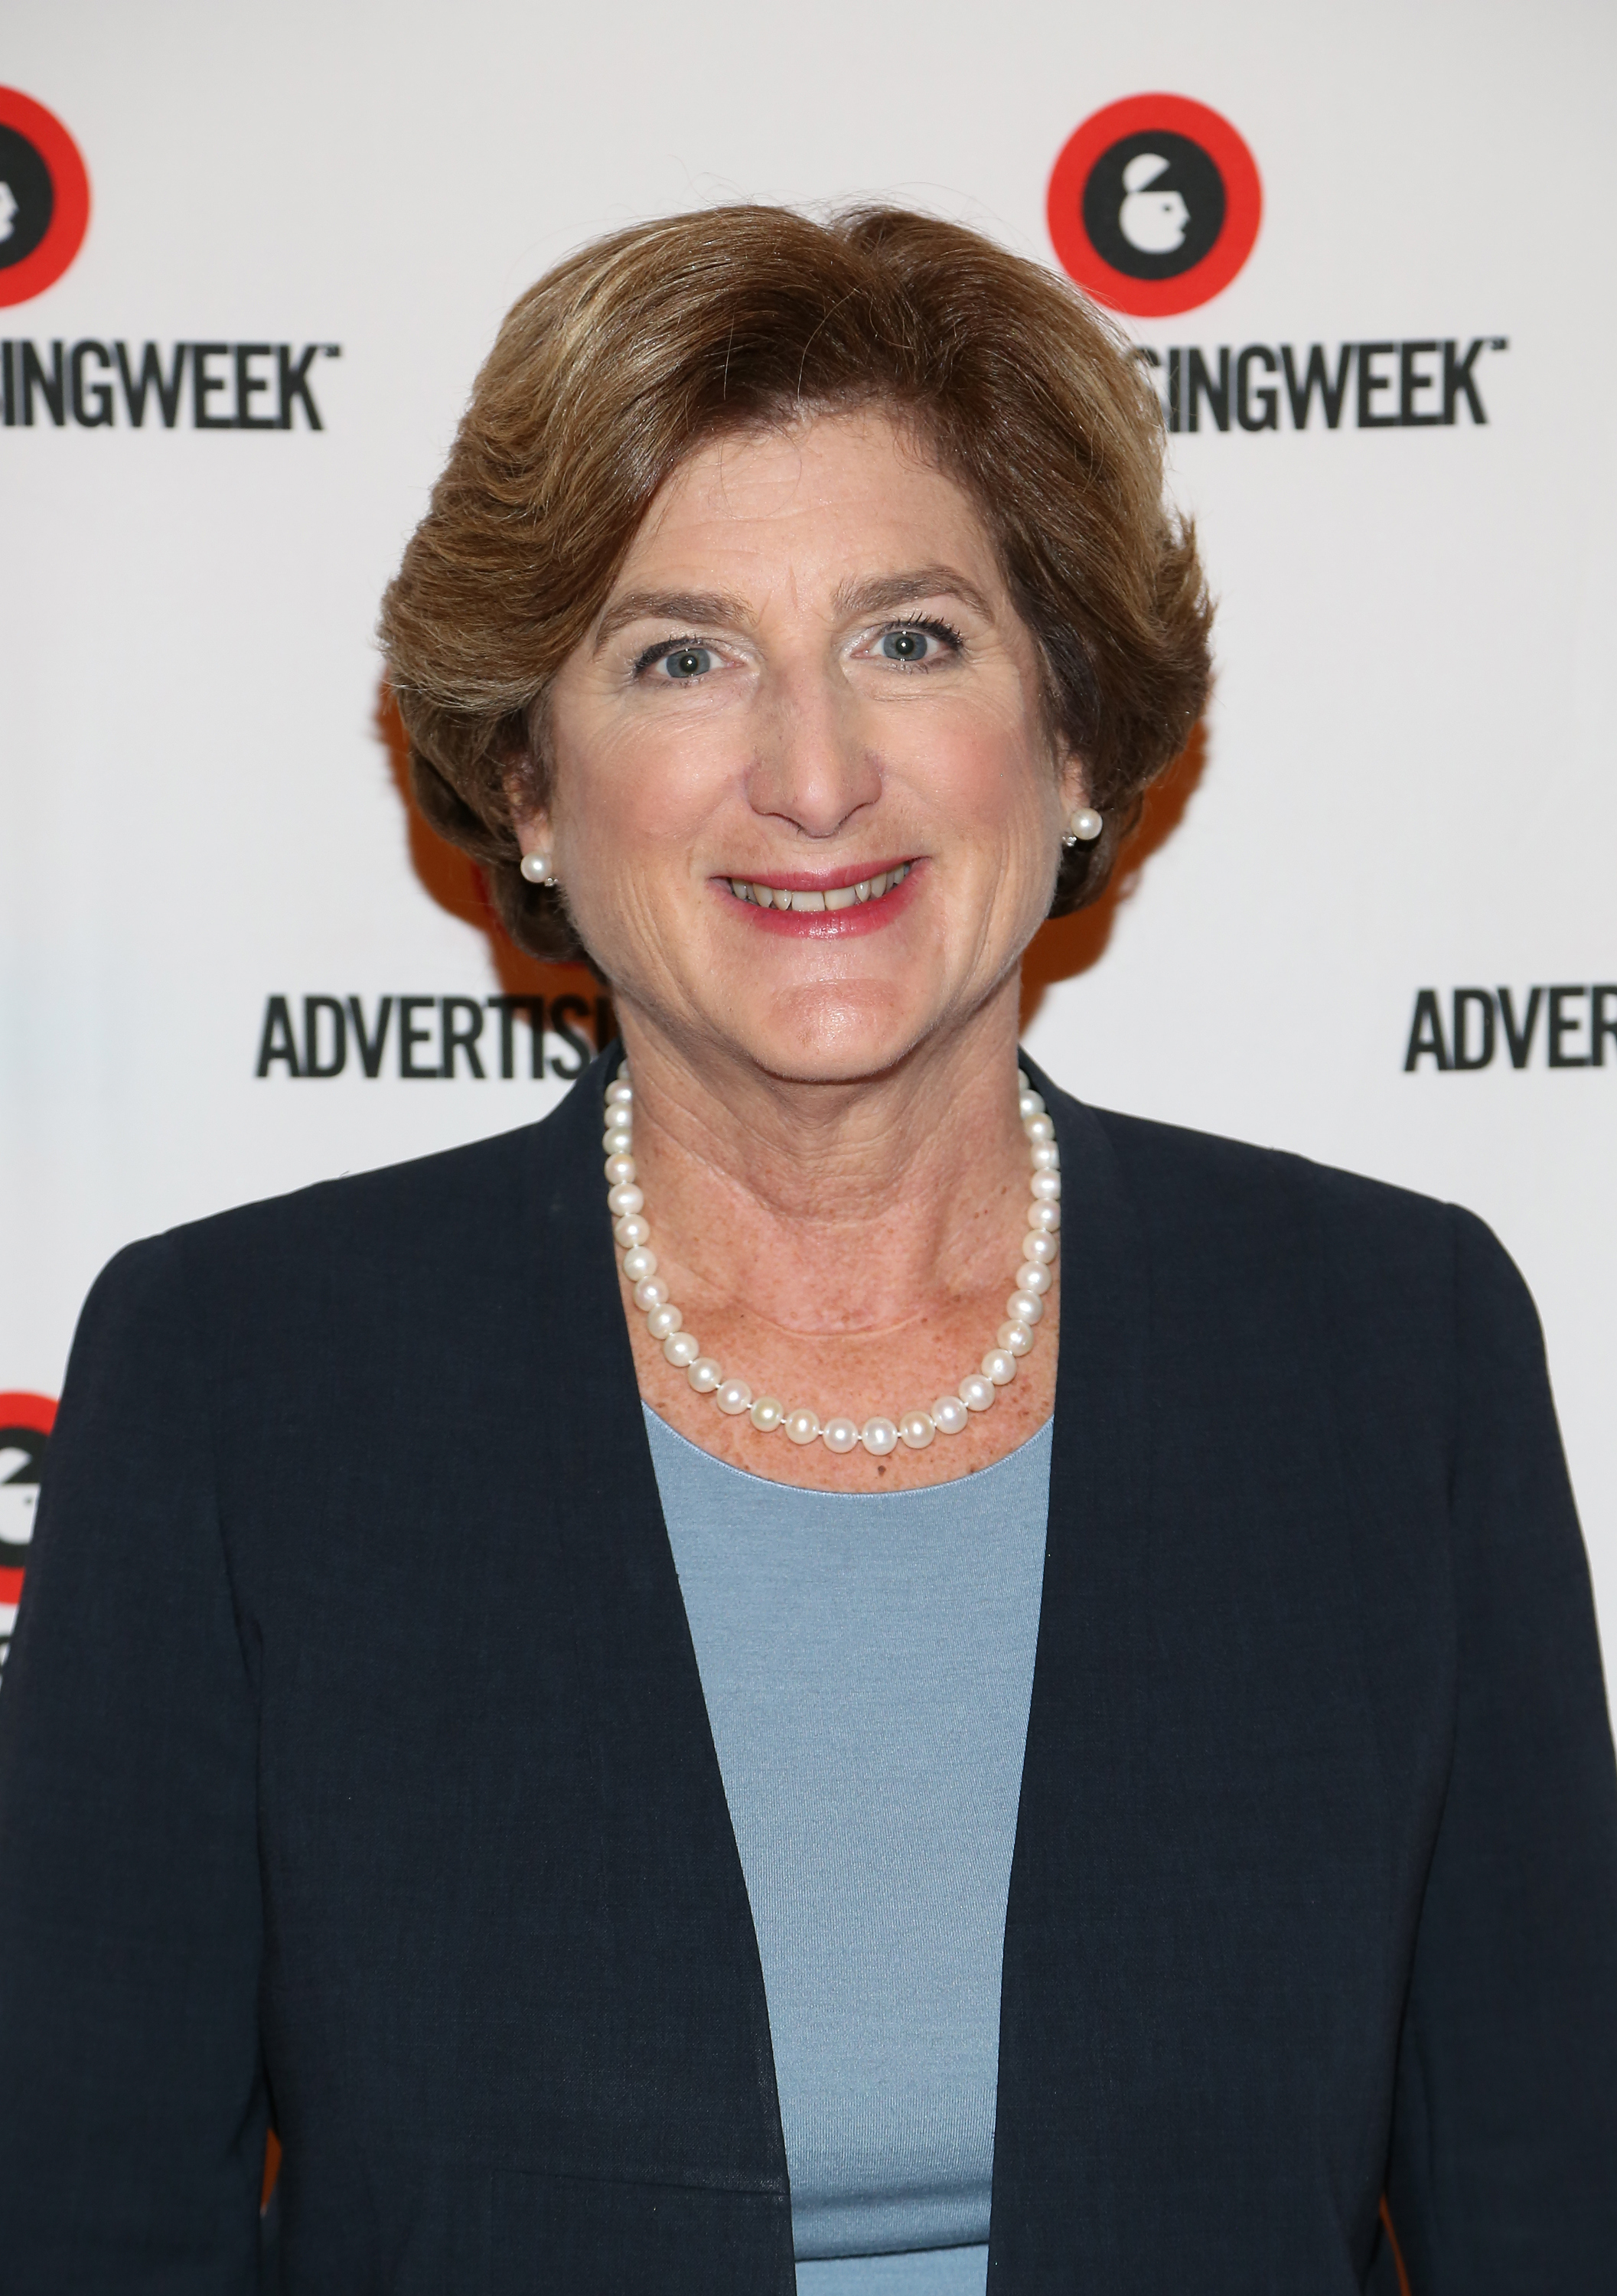 Denise Morrison attends the Thrive Arianna Huffington panel during AWXI on October 1, 2014 in New York City.